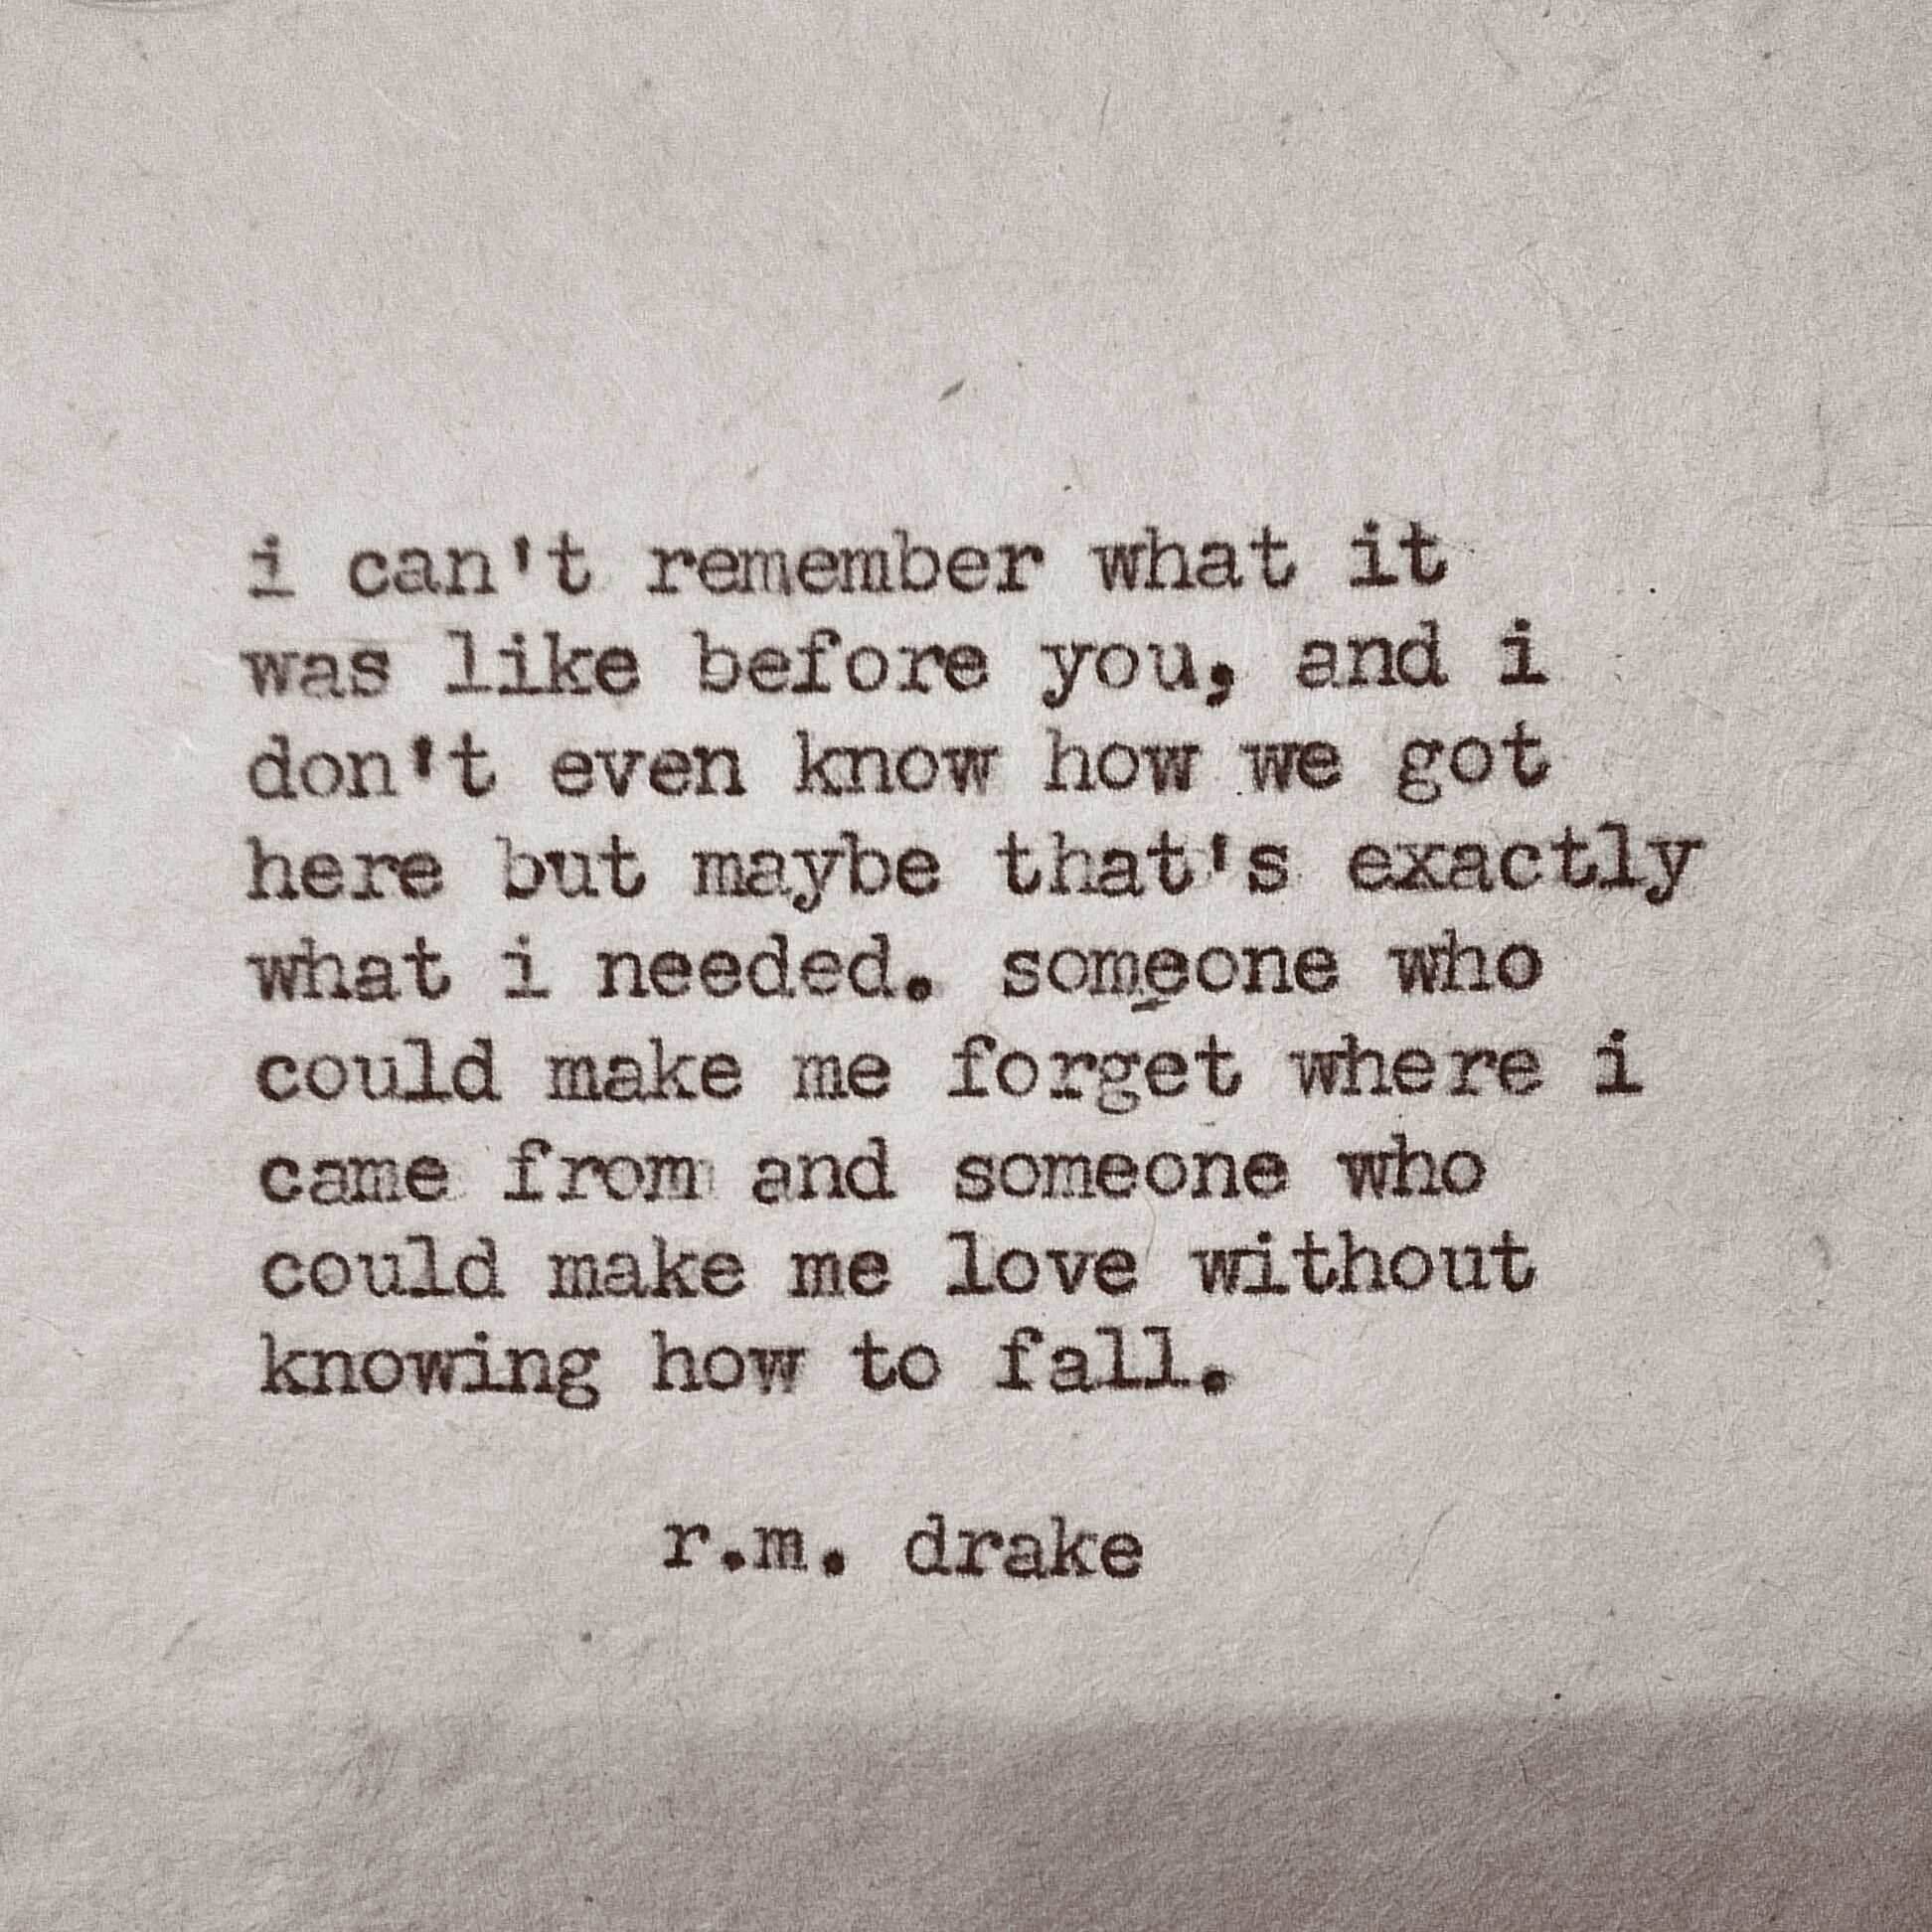 Fall Quotes About Love R.mdrake  Google Search  Poetry  Pinterest  Google Search